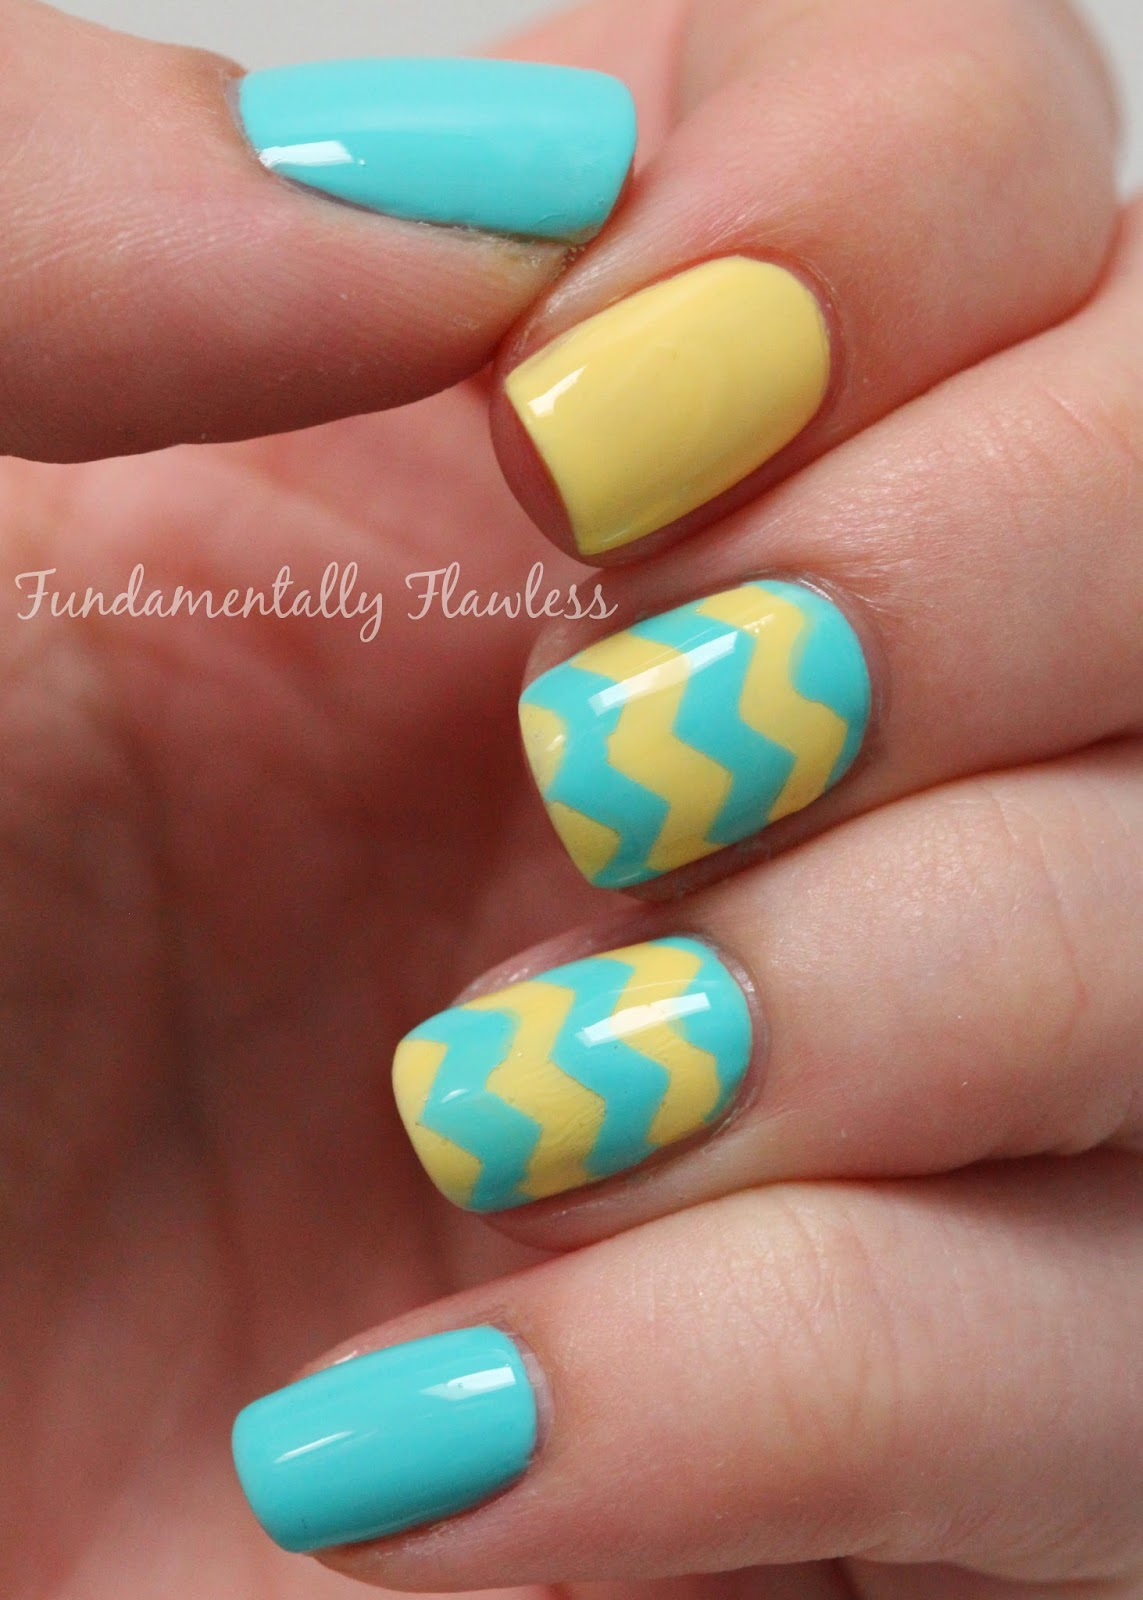 These Colours Work Well Together For Nail Art So I Did A Very Quick Chevron Mani